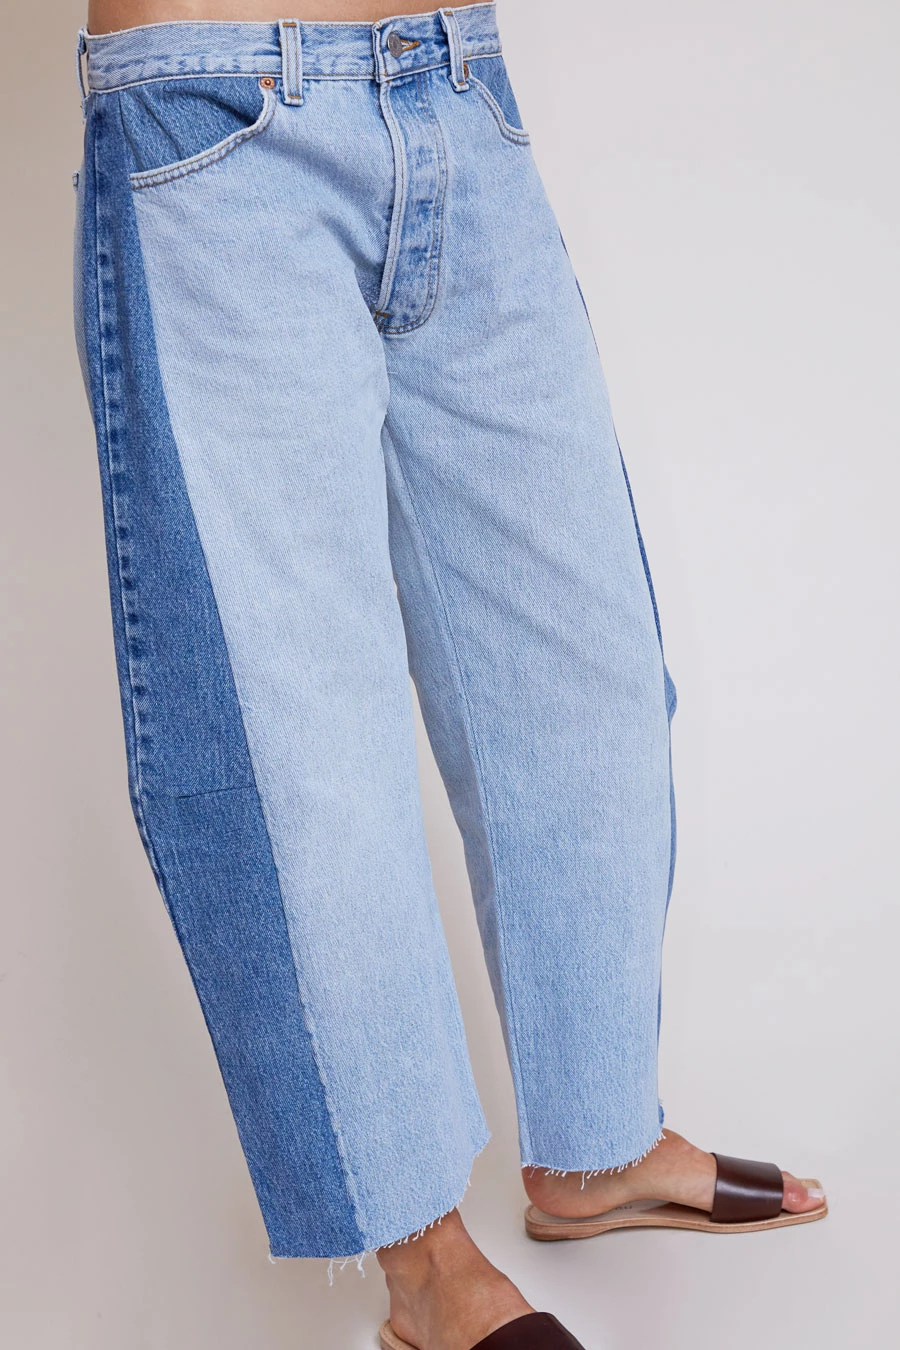 B Sides Aux Regular Lasso Jean In Isaac Wash Short Outfits Denim Fashion